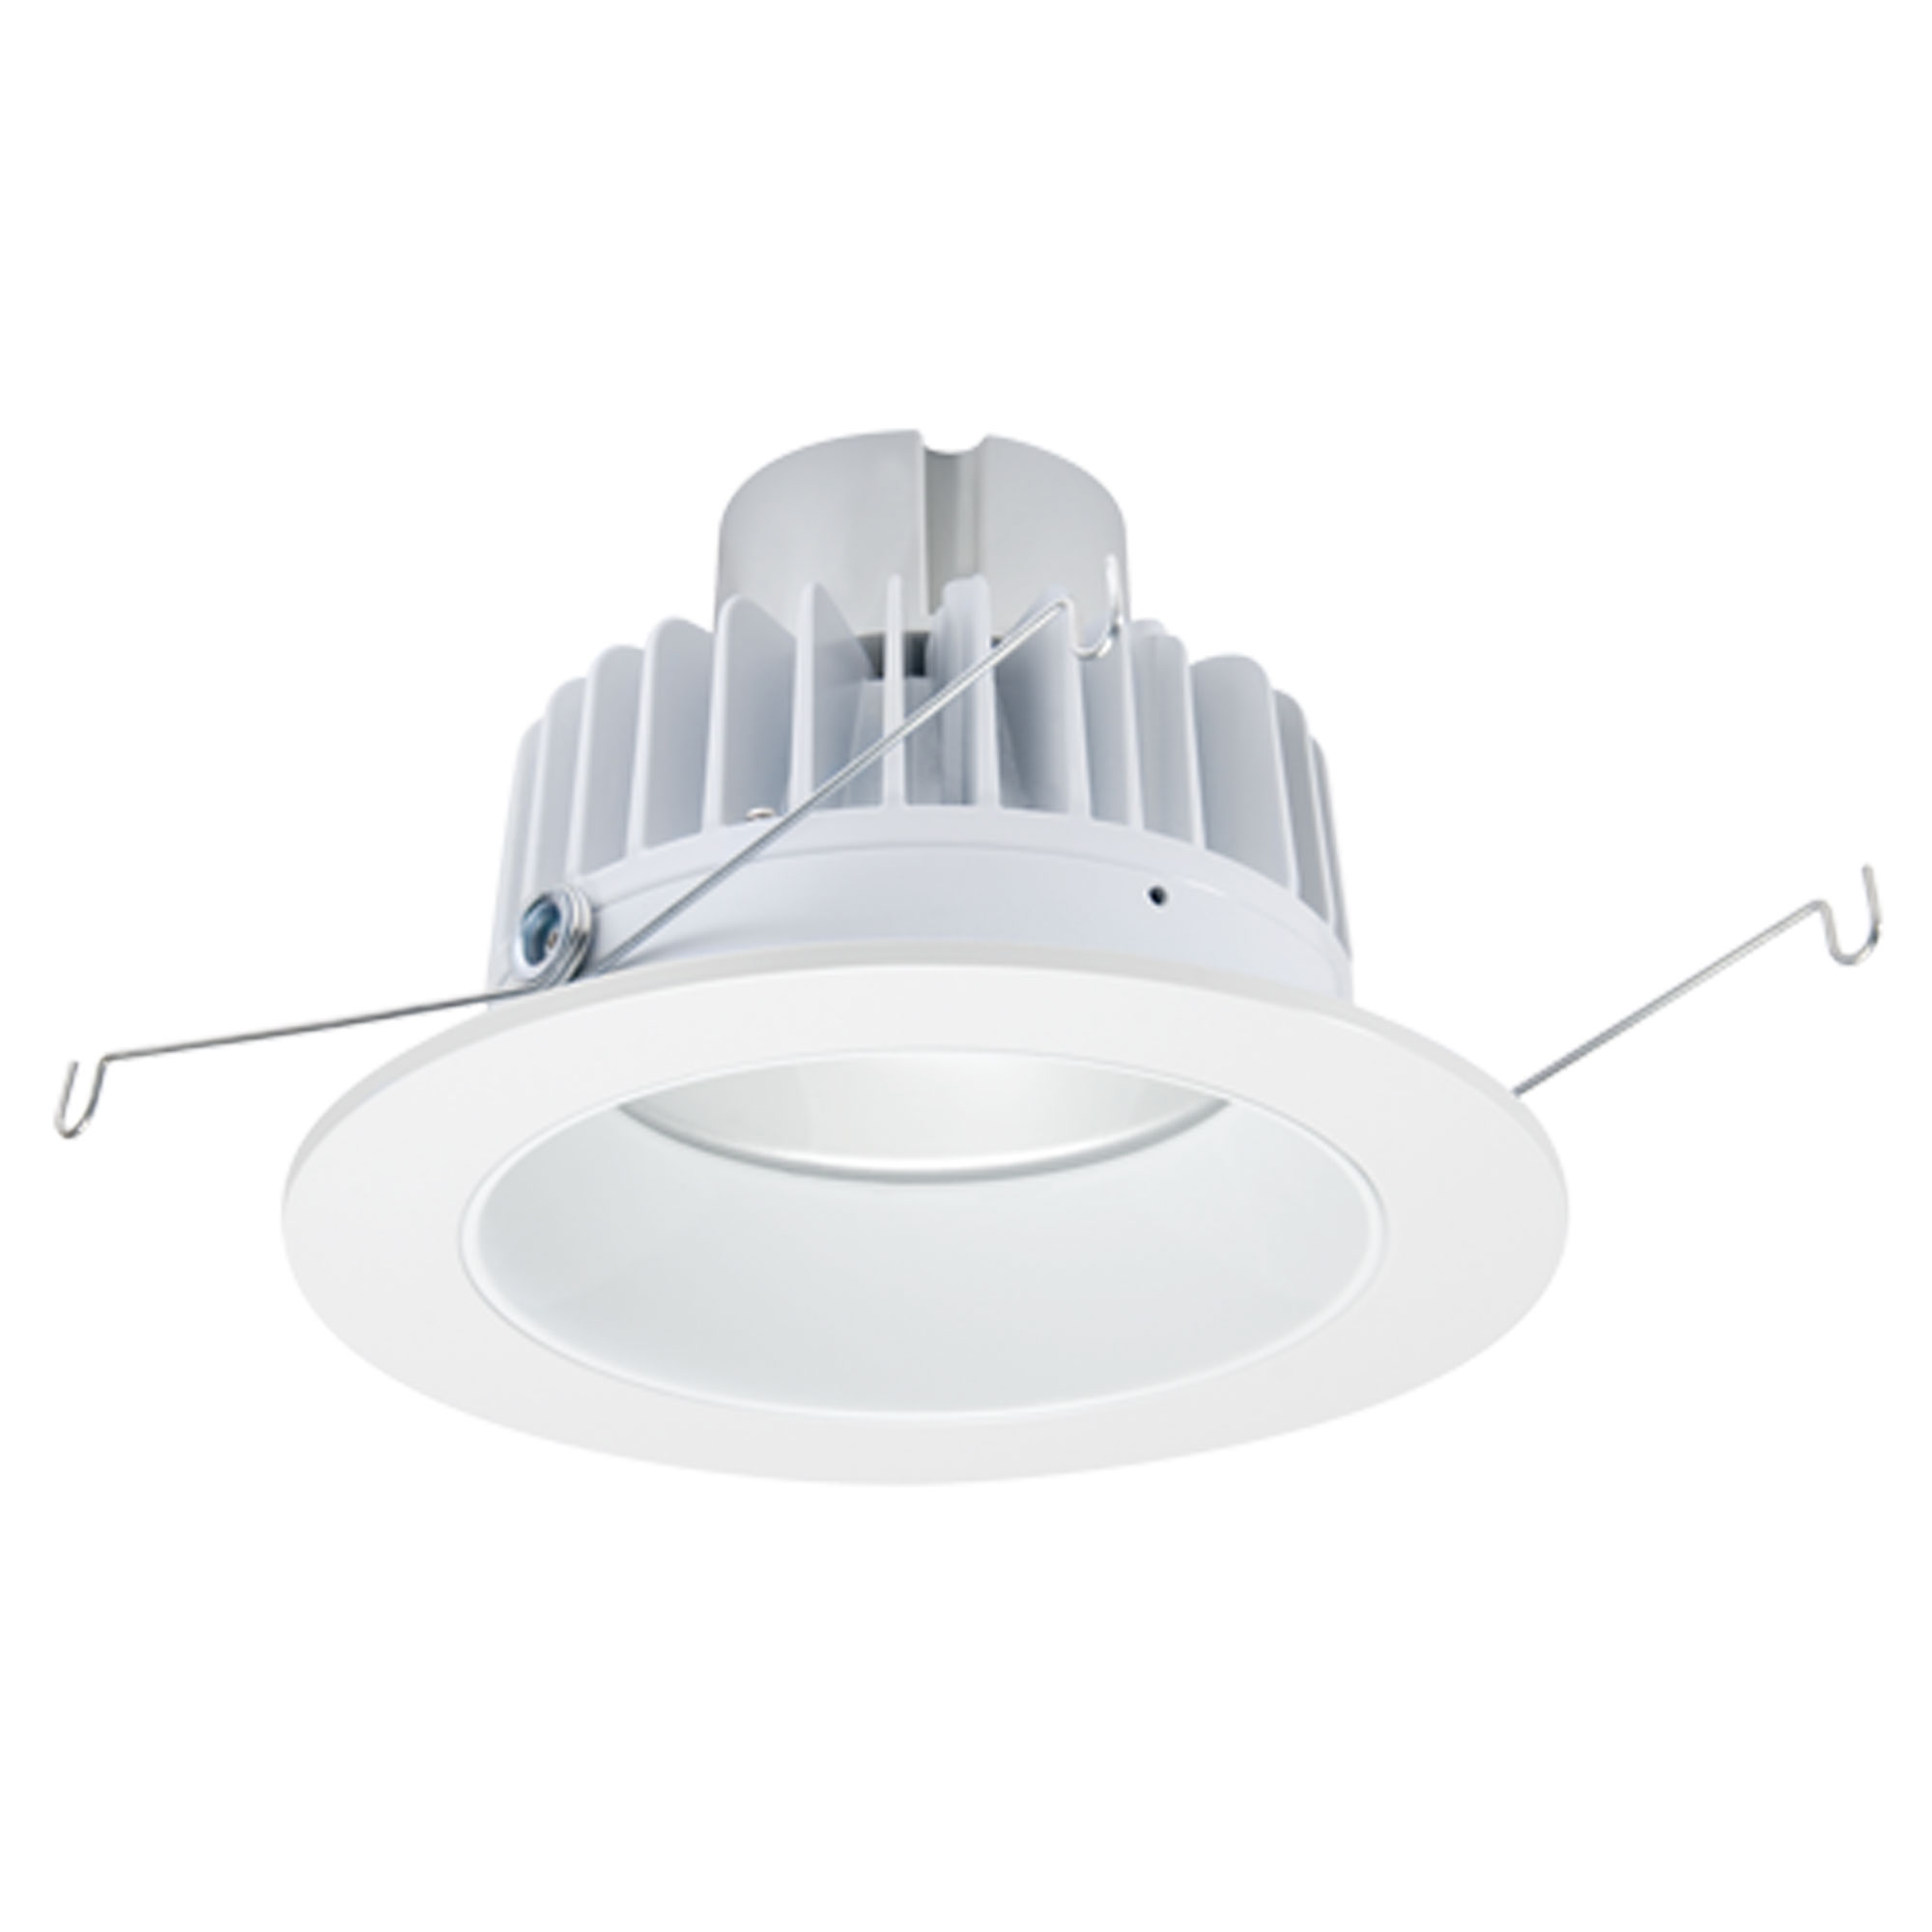 6 Series 900lm Commercial Retrofit Recessed Reflector By Elite Led Lighting 848070075012